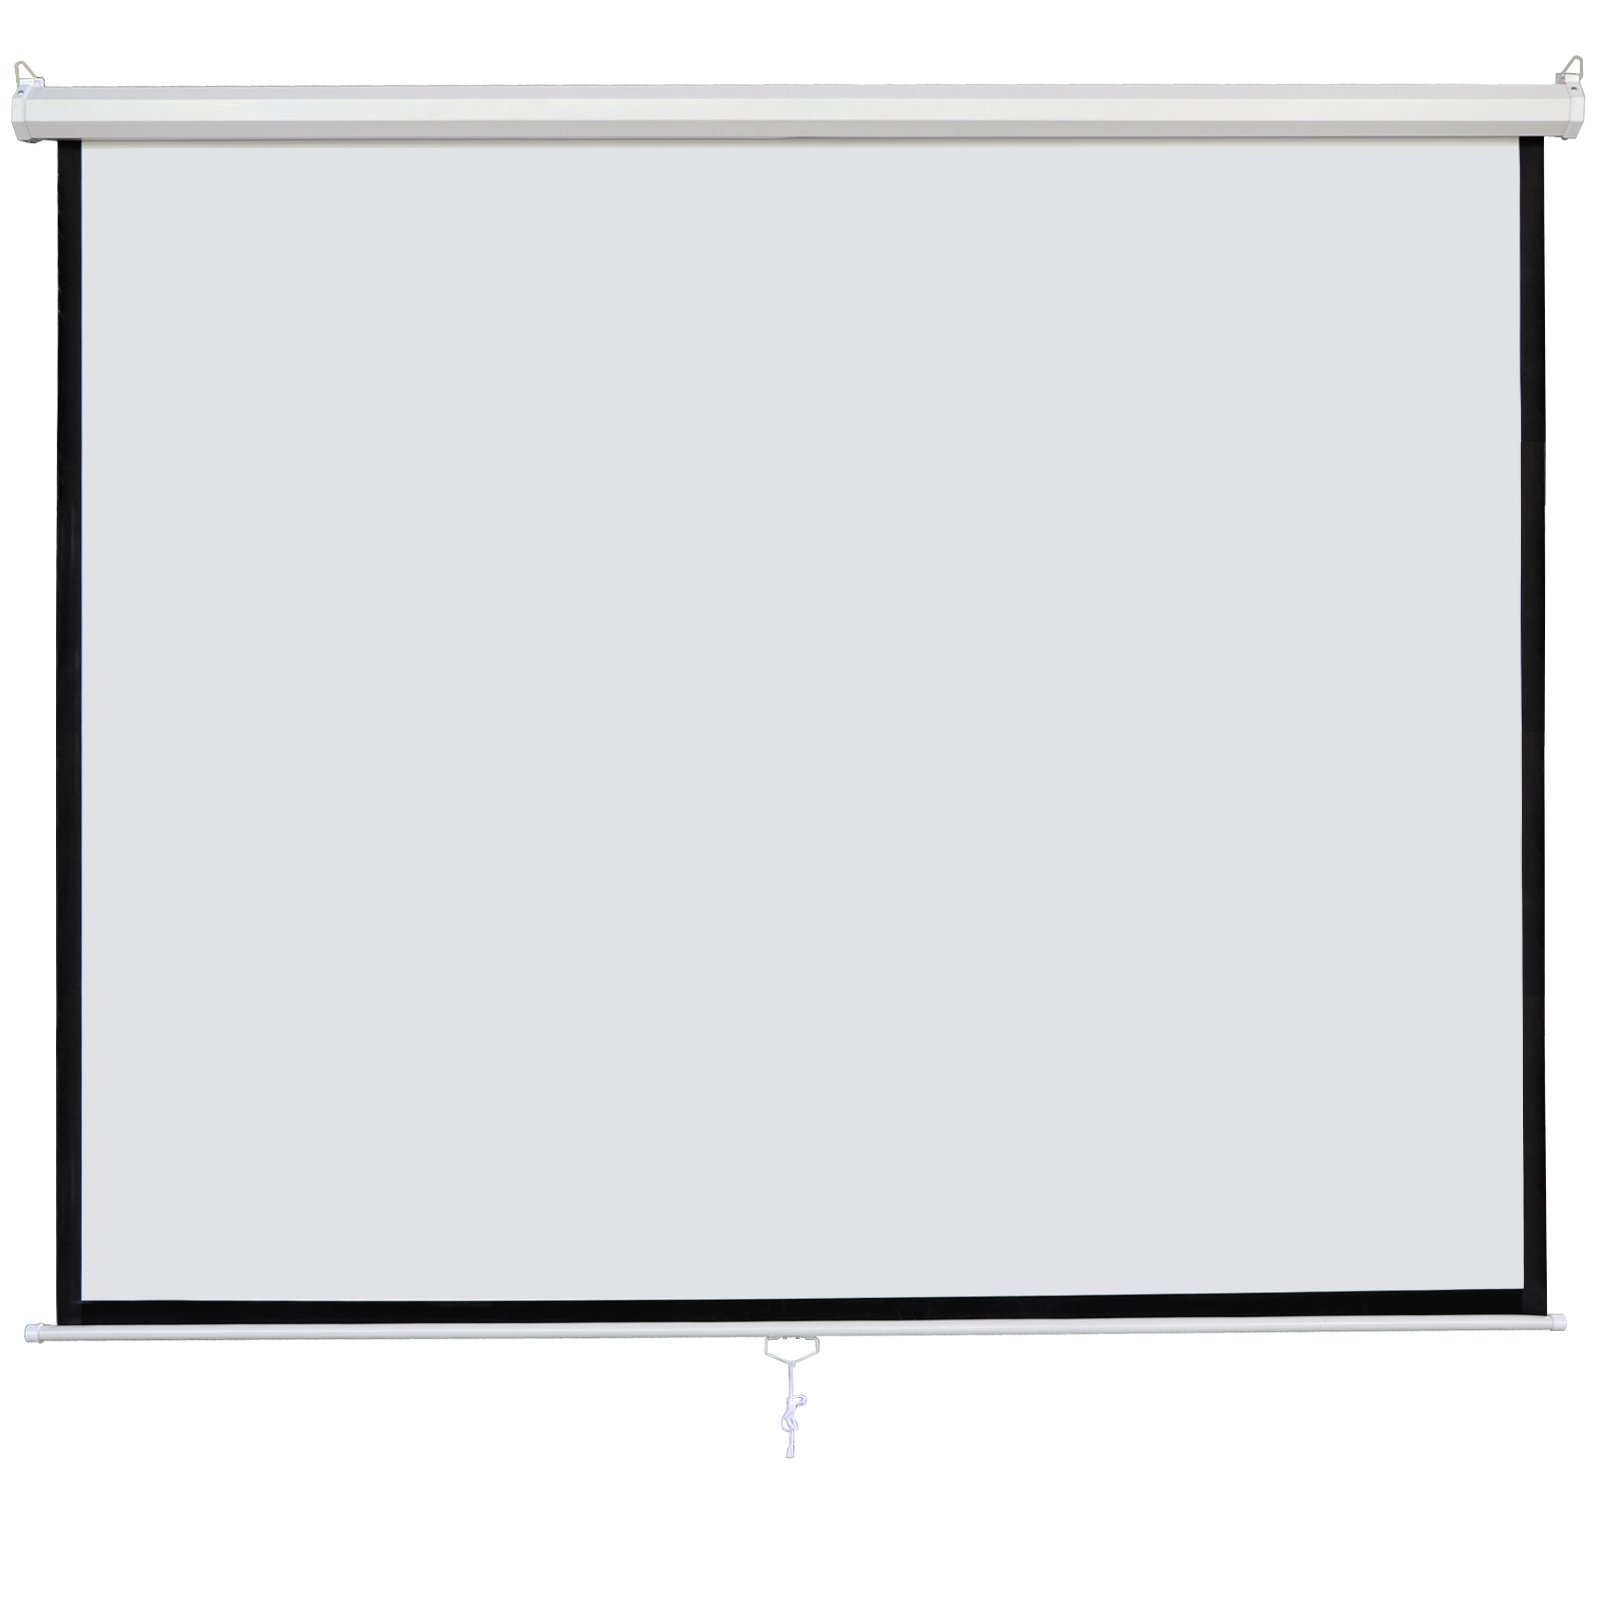 SUPER DEAL 120'' Projector Screen Projection Screen Manual Pull Down HD Screen 1:1 Format for Home Cinema Theater Presentation Education Outdoor Indoor Public Display by SUPER DEAL (Image #2)